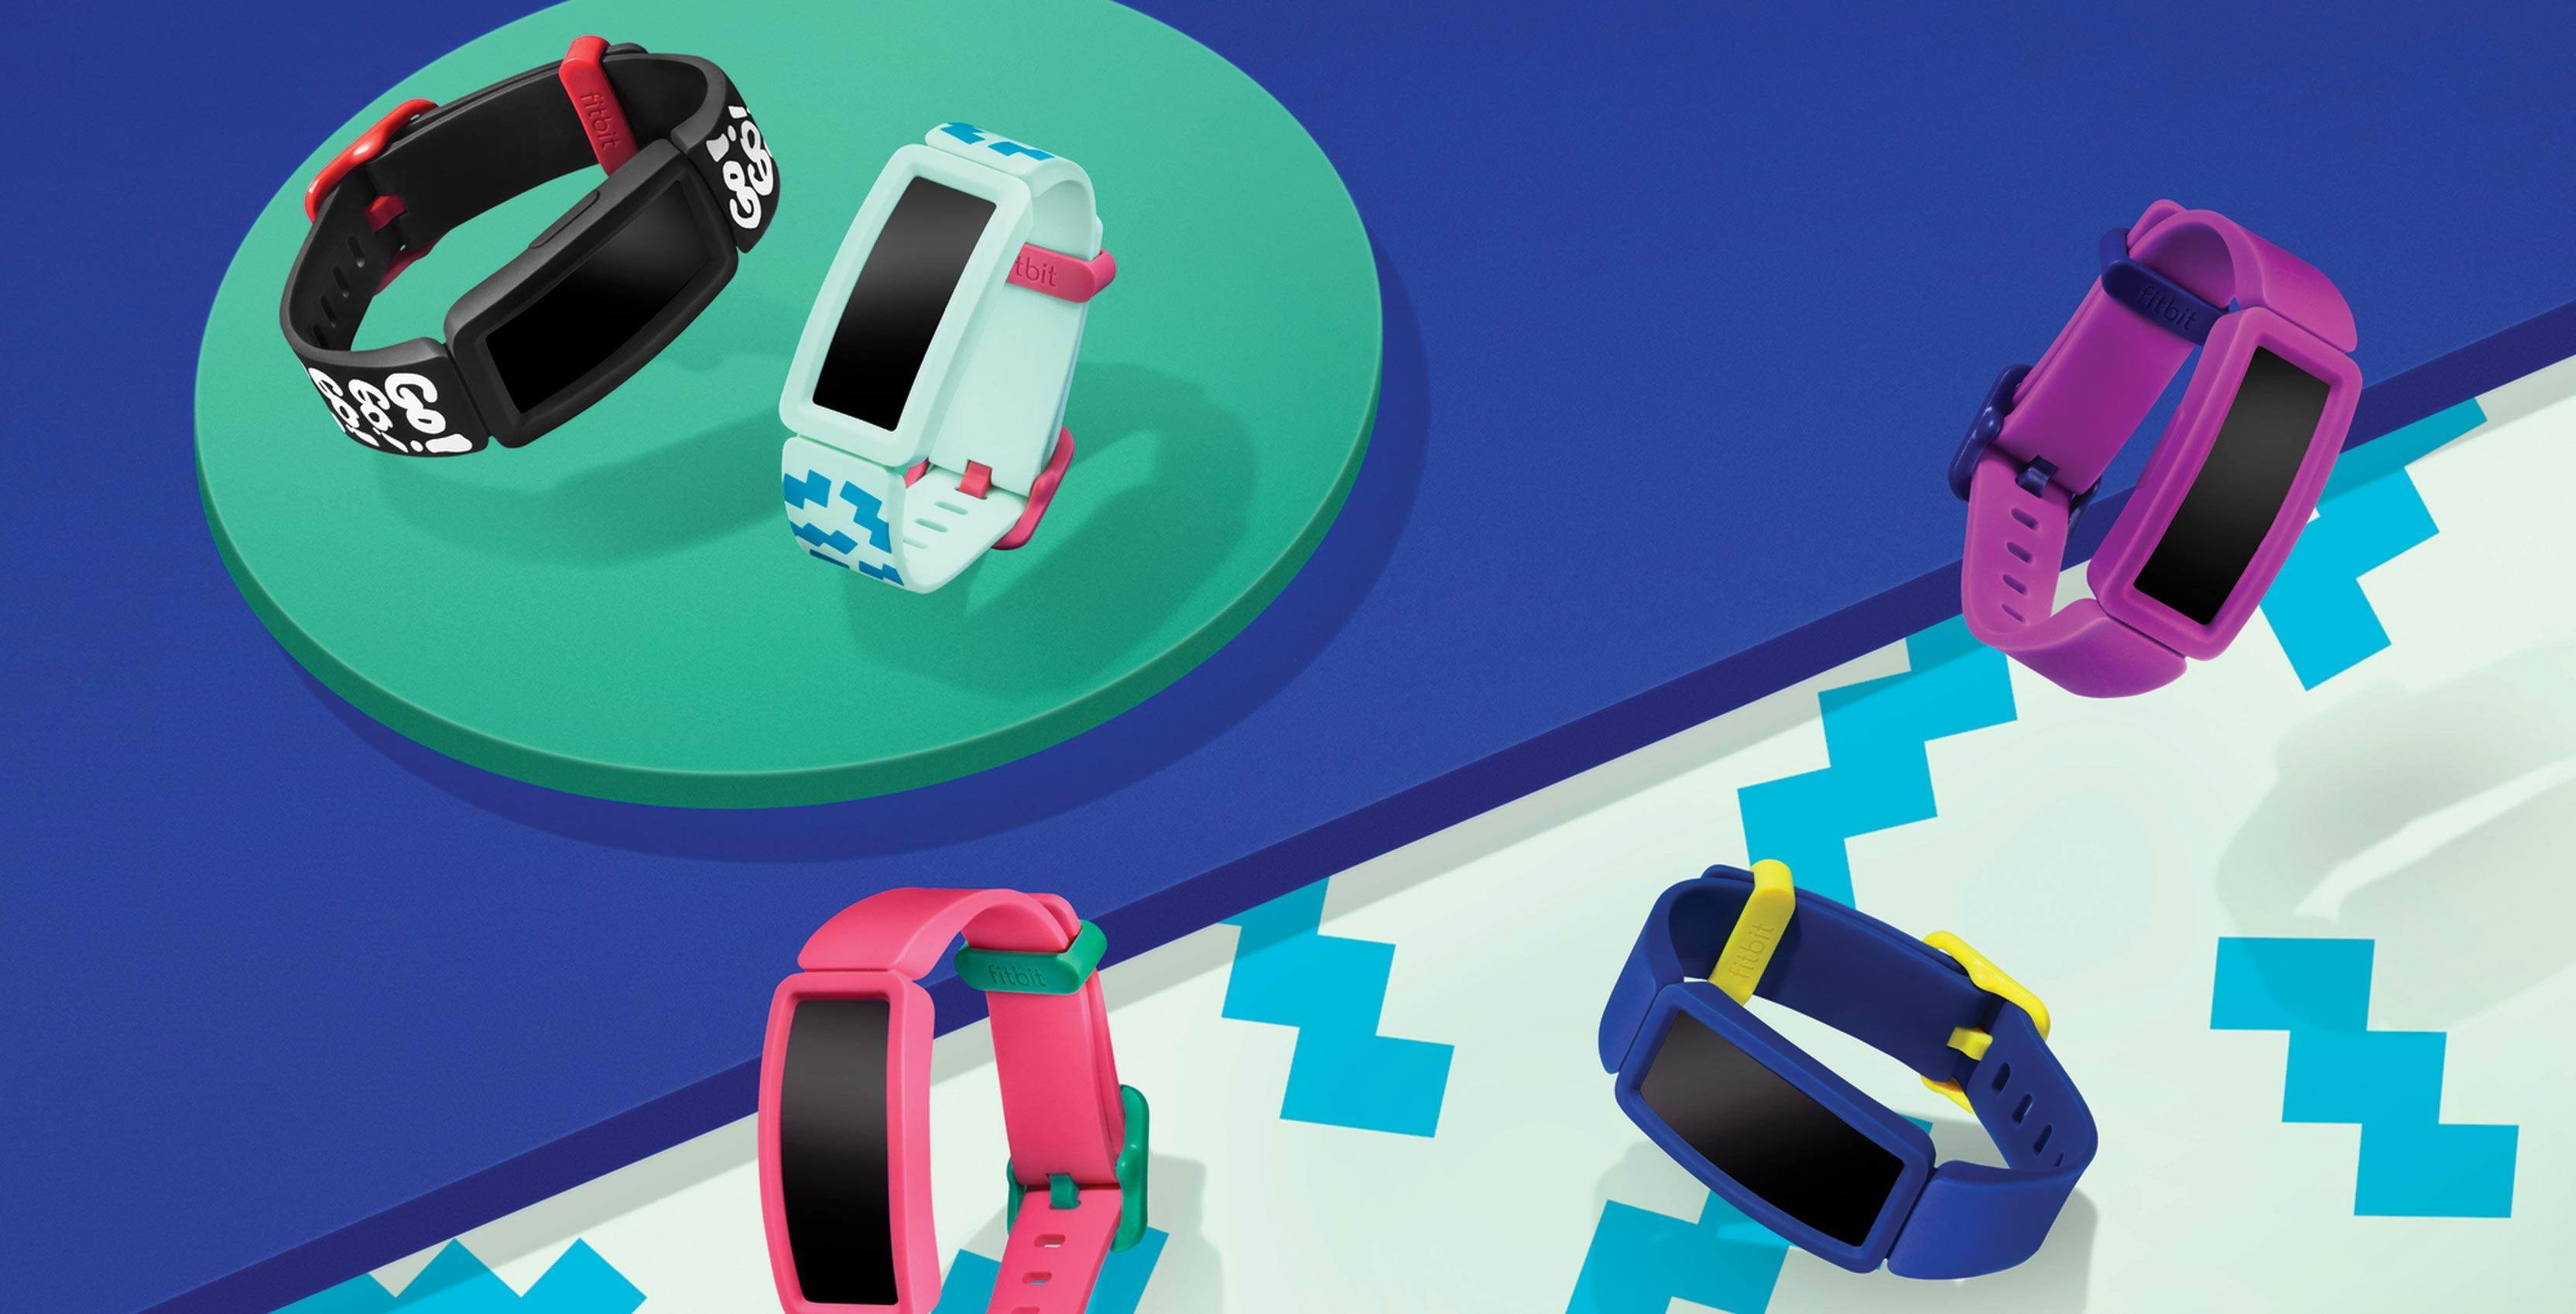 Fitbit's kid-friendly tracker gets a fun new design